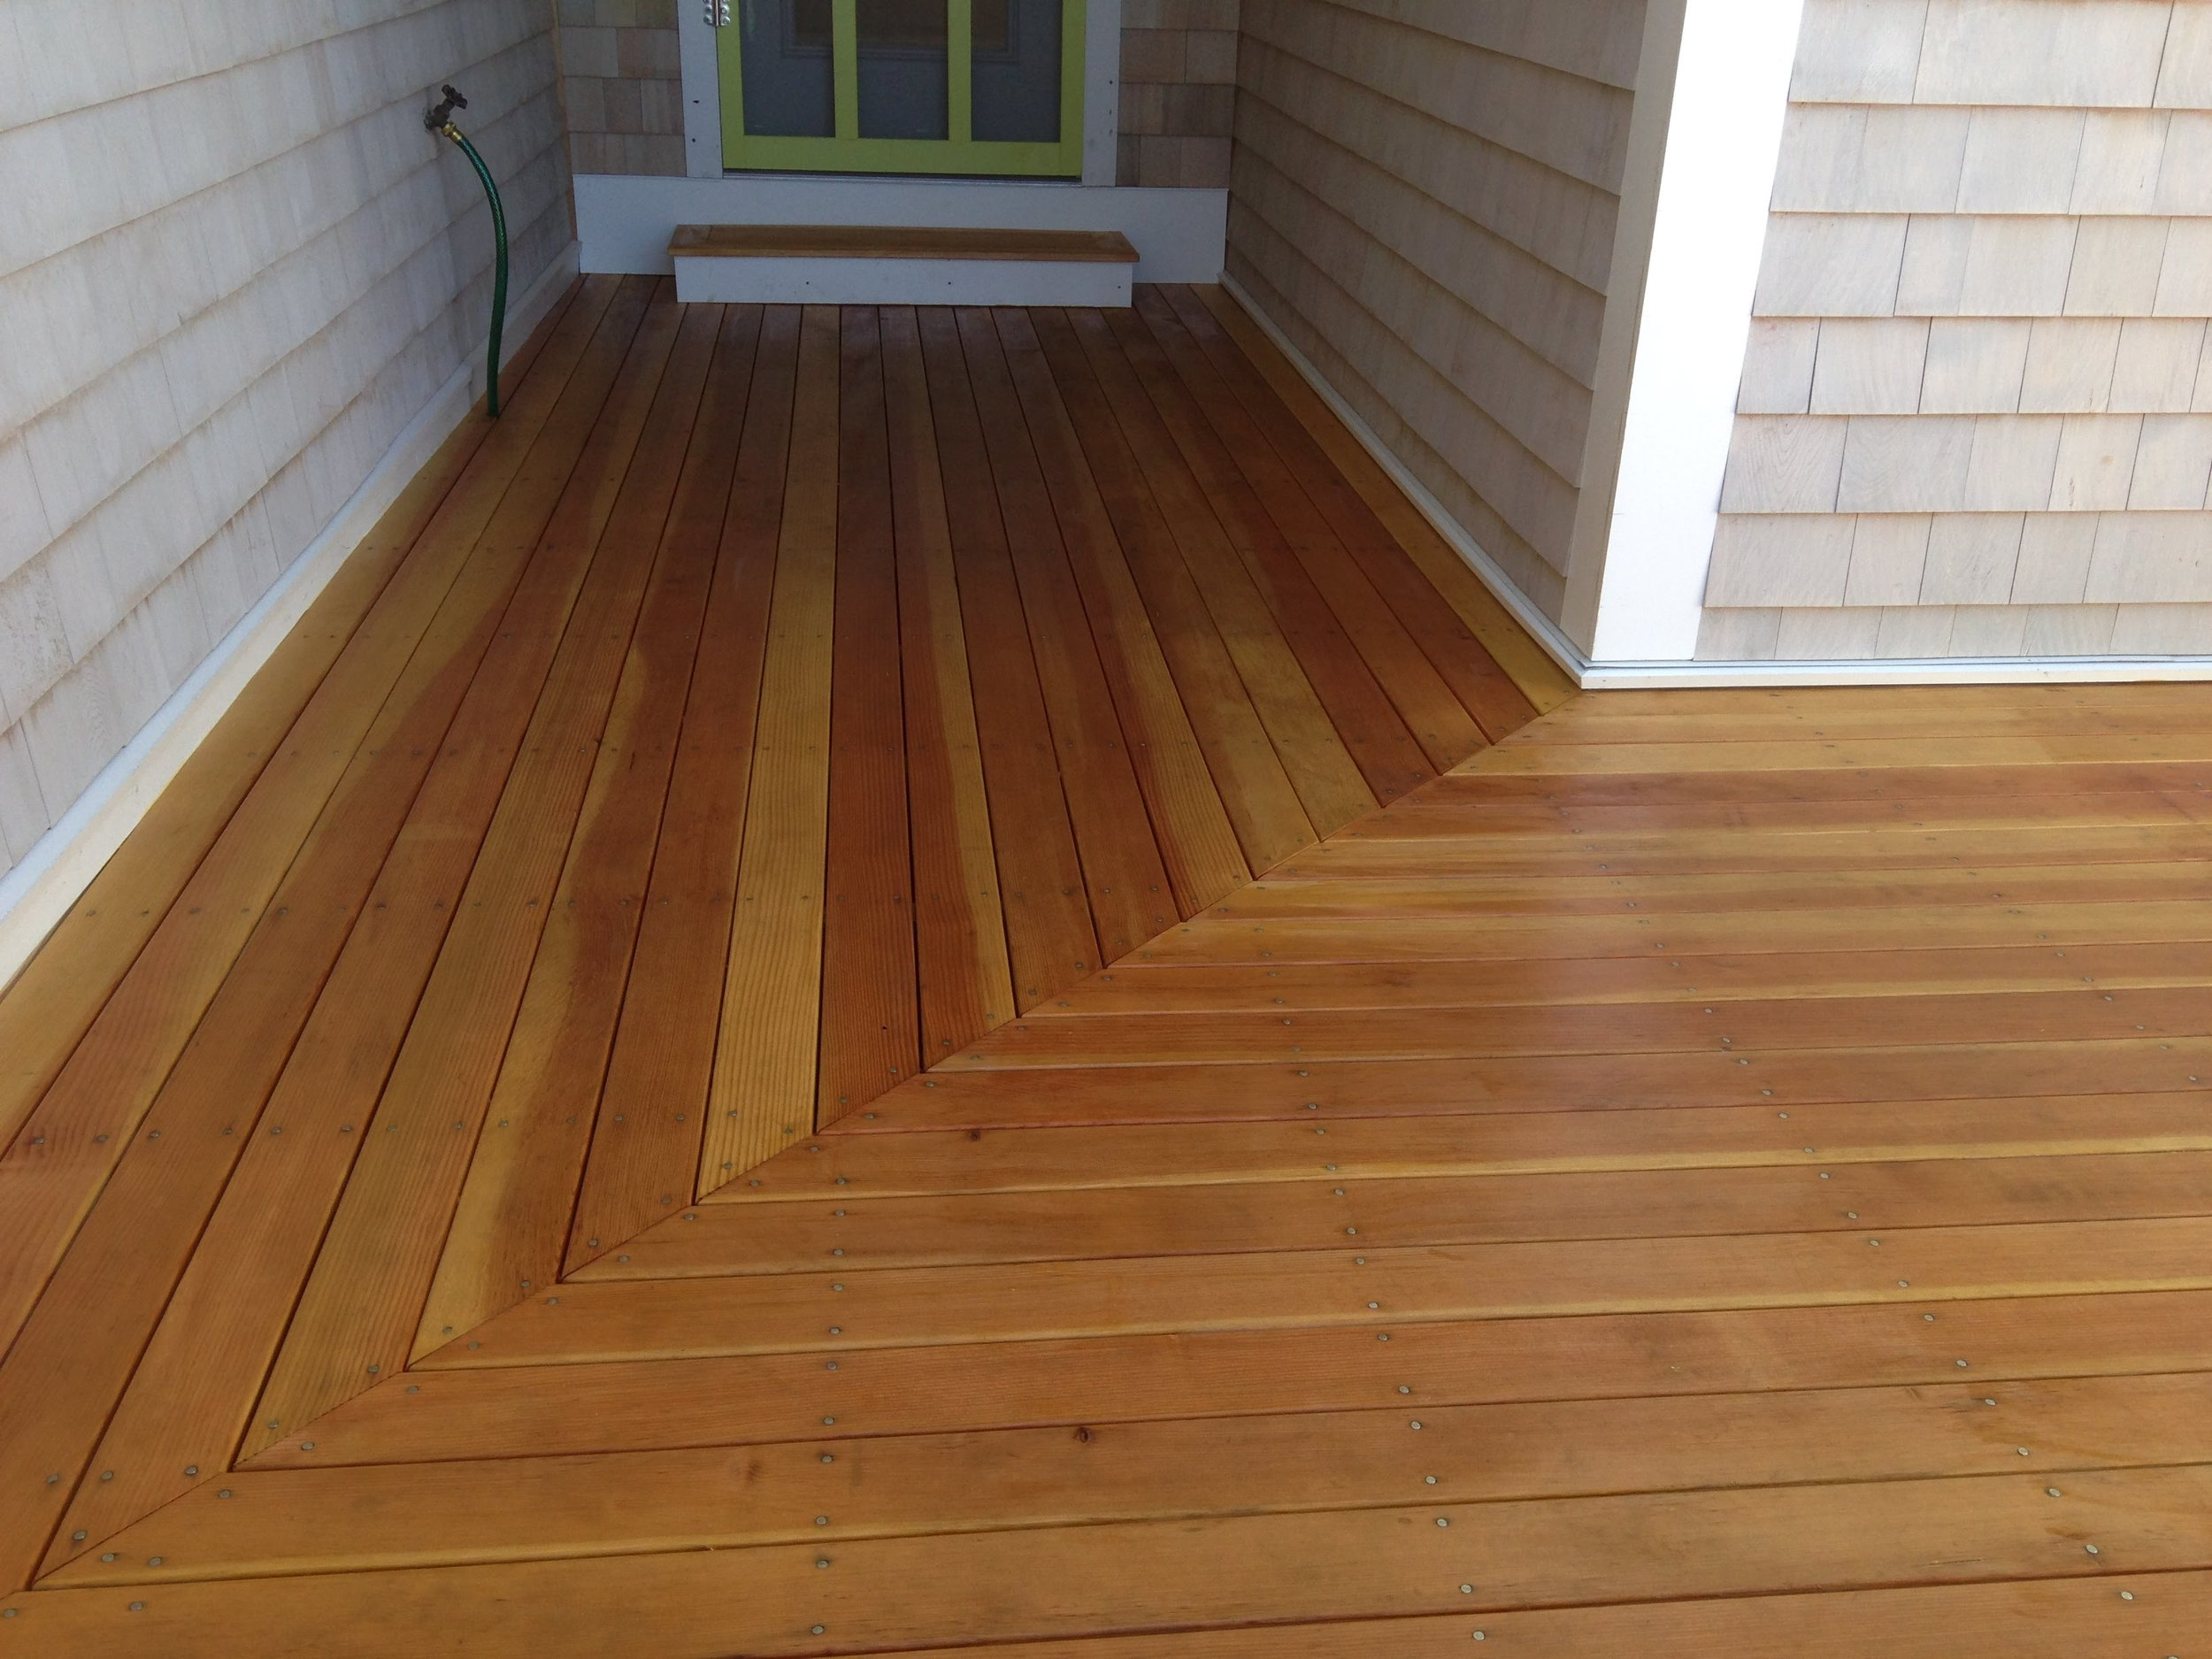 Deck Installation - We specialize in both custom decking design and solutions for challenging deck layouts.